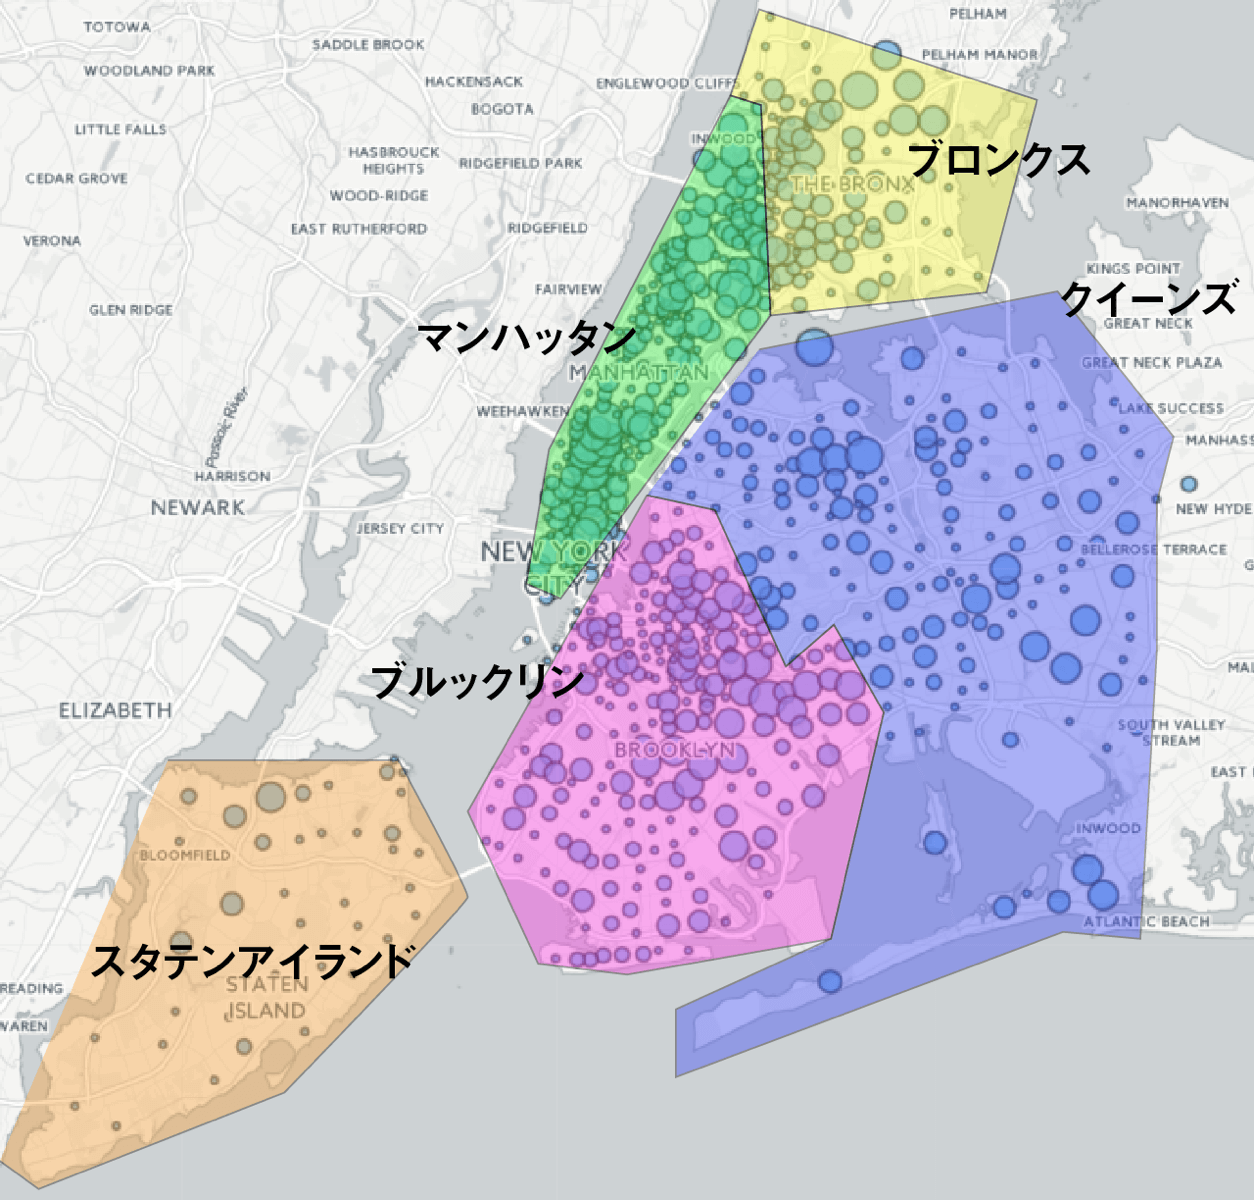 Nyc crime map color